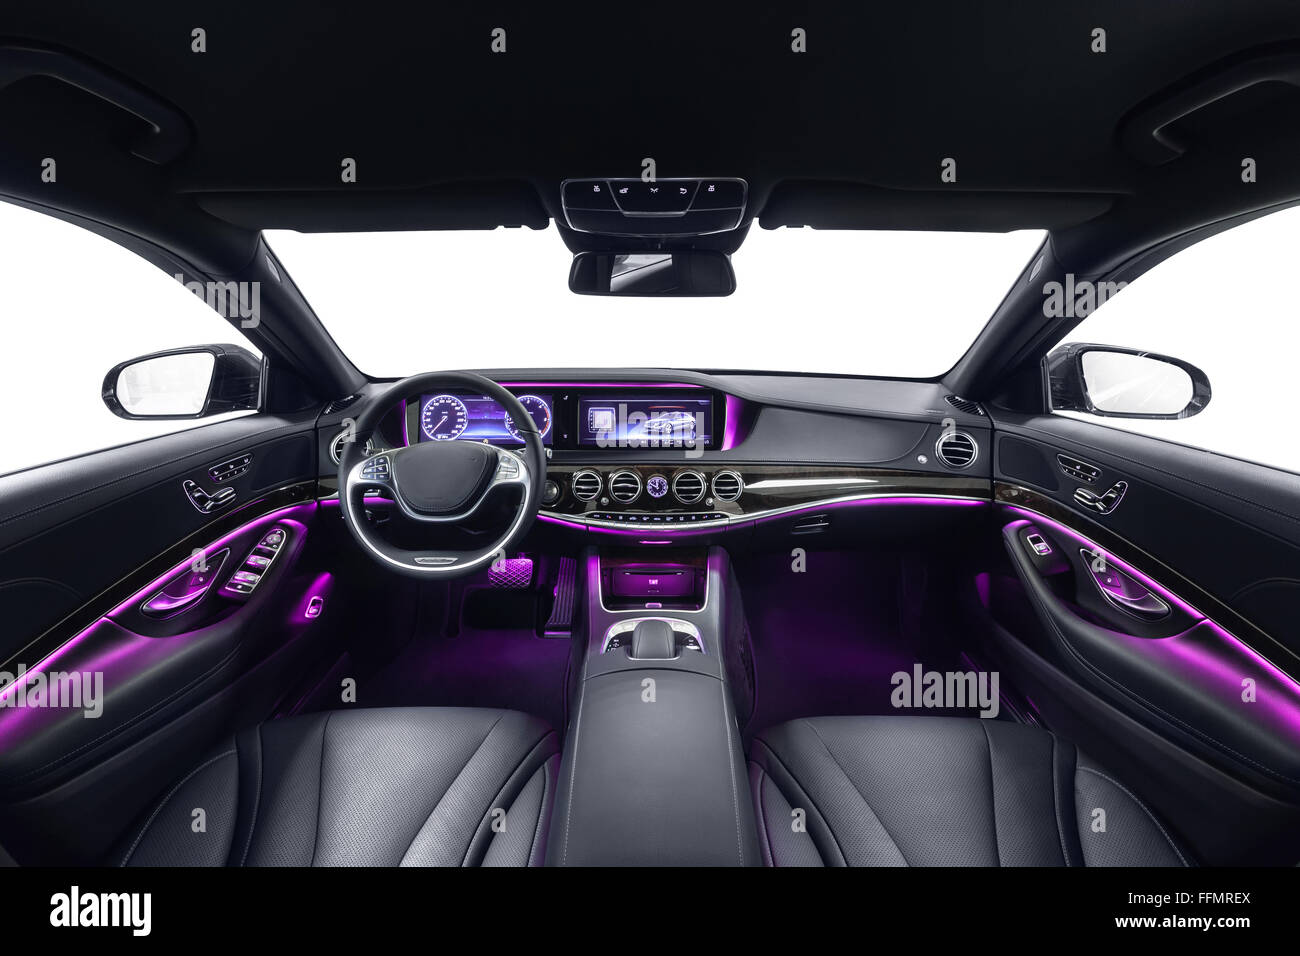 Car Interior Luxury Black Seats With Violet Ambient Light. Comfortable  Modern Salon. Cleaning And Detailing Car Service.